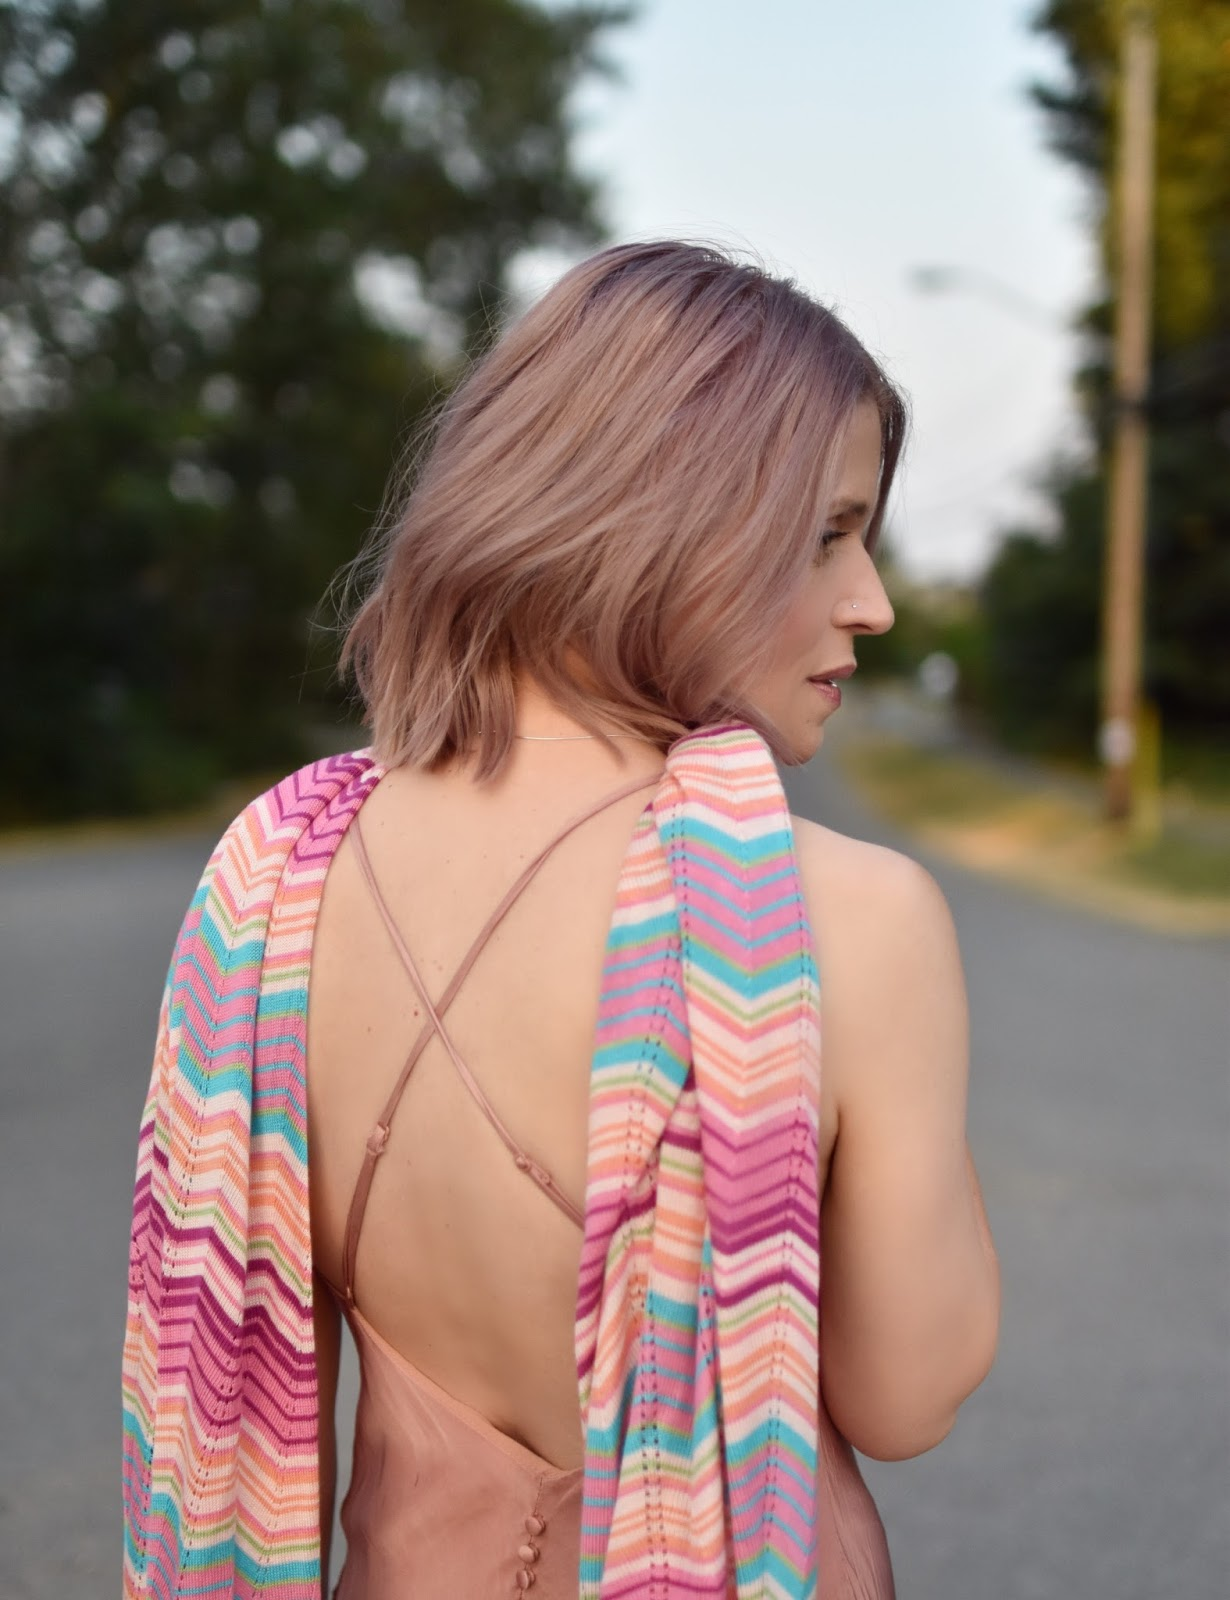 Monika Faulkner personal style inspiration - pink slip dress, Missoni-inspired knit scarf